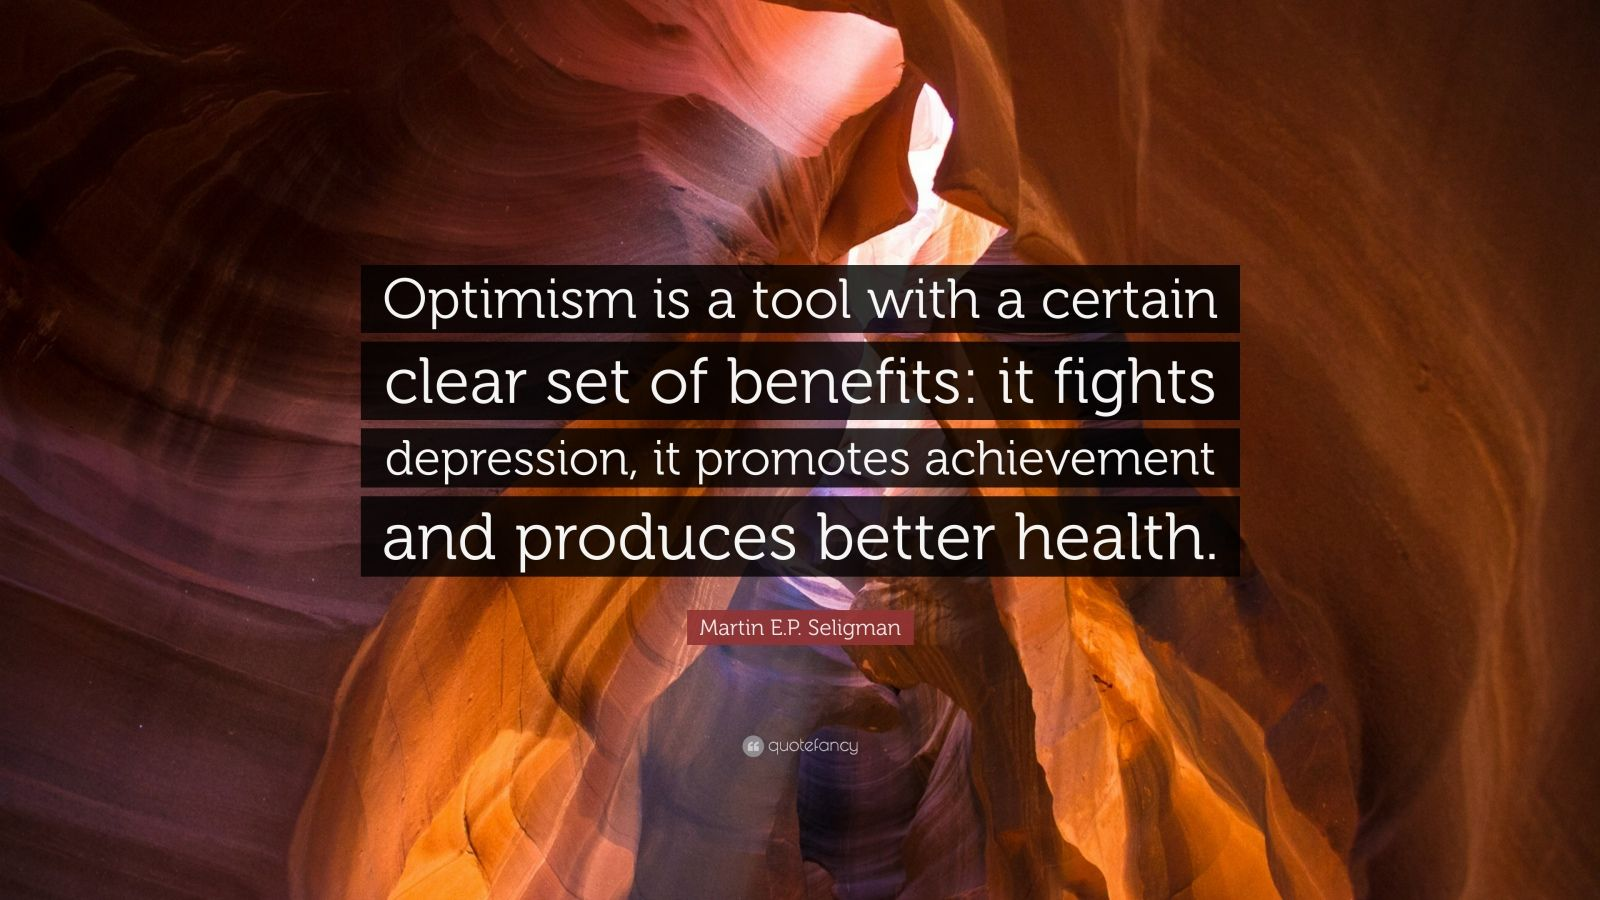 Optimism and your health